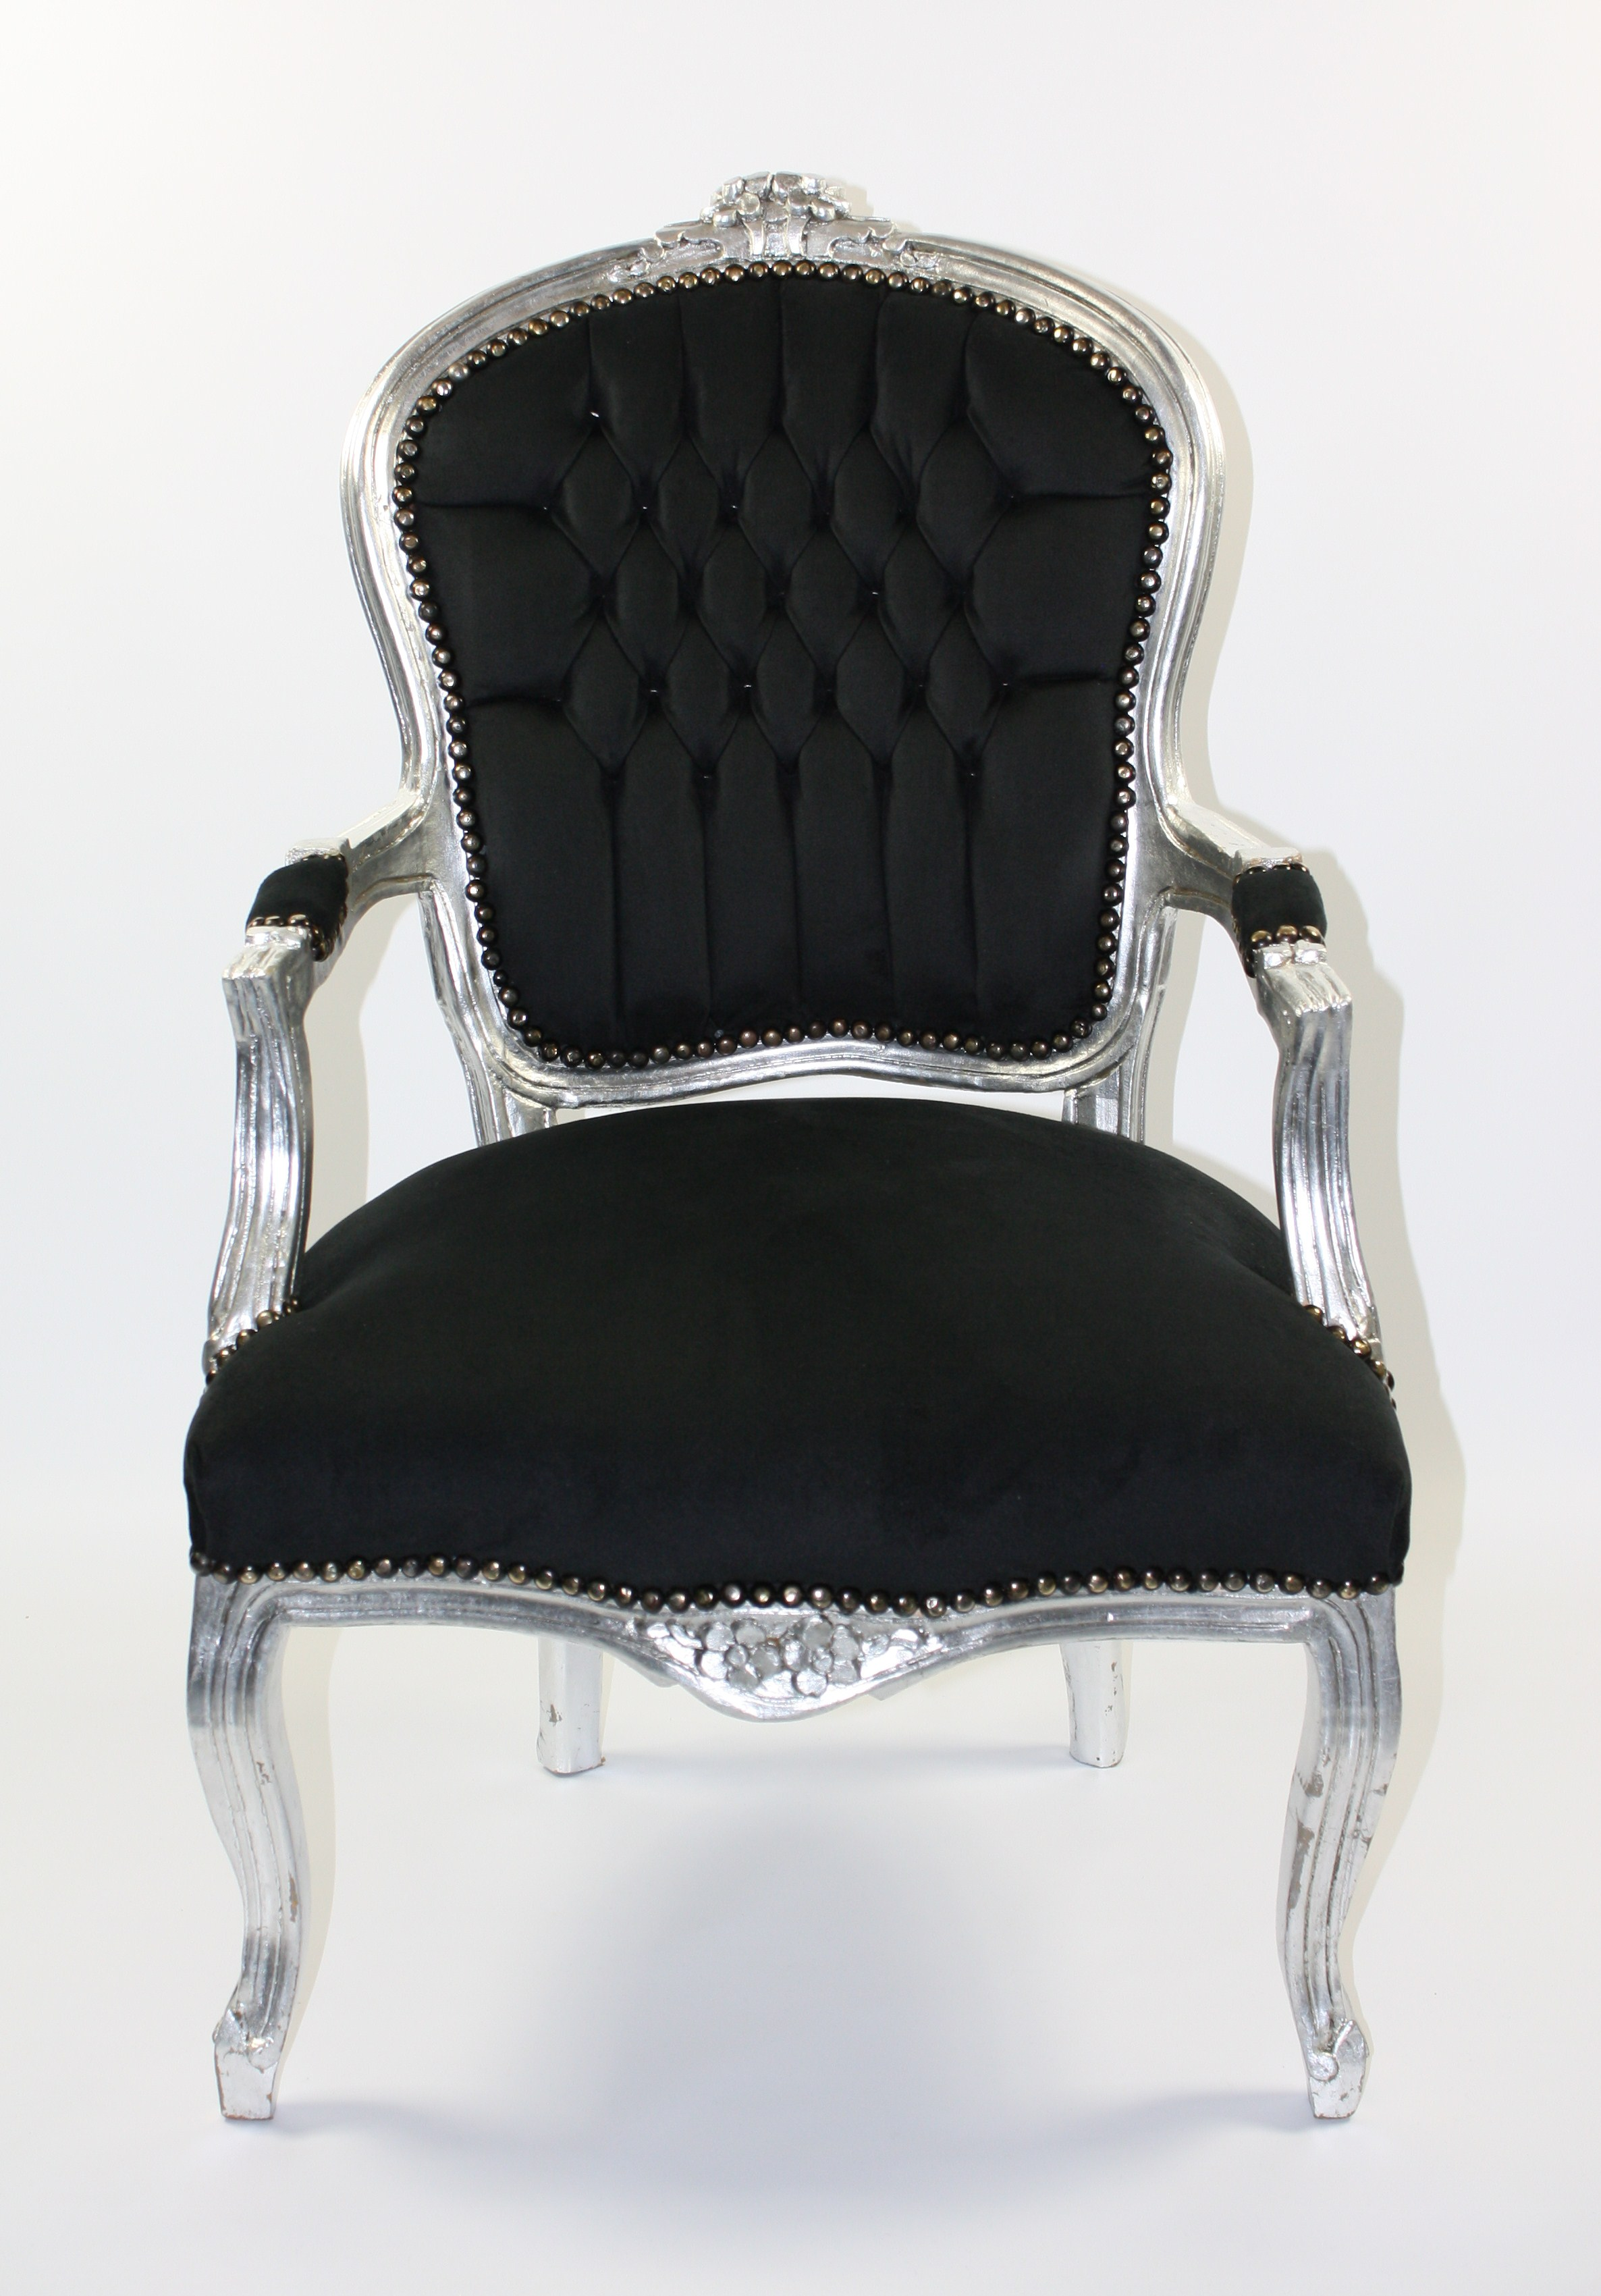 Silver chair furniture - Silver And Black Velvet Salon Chair Categories Chairs